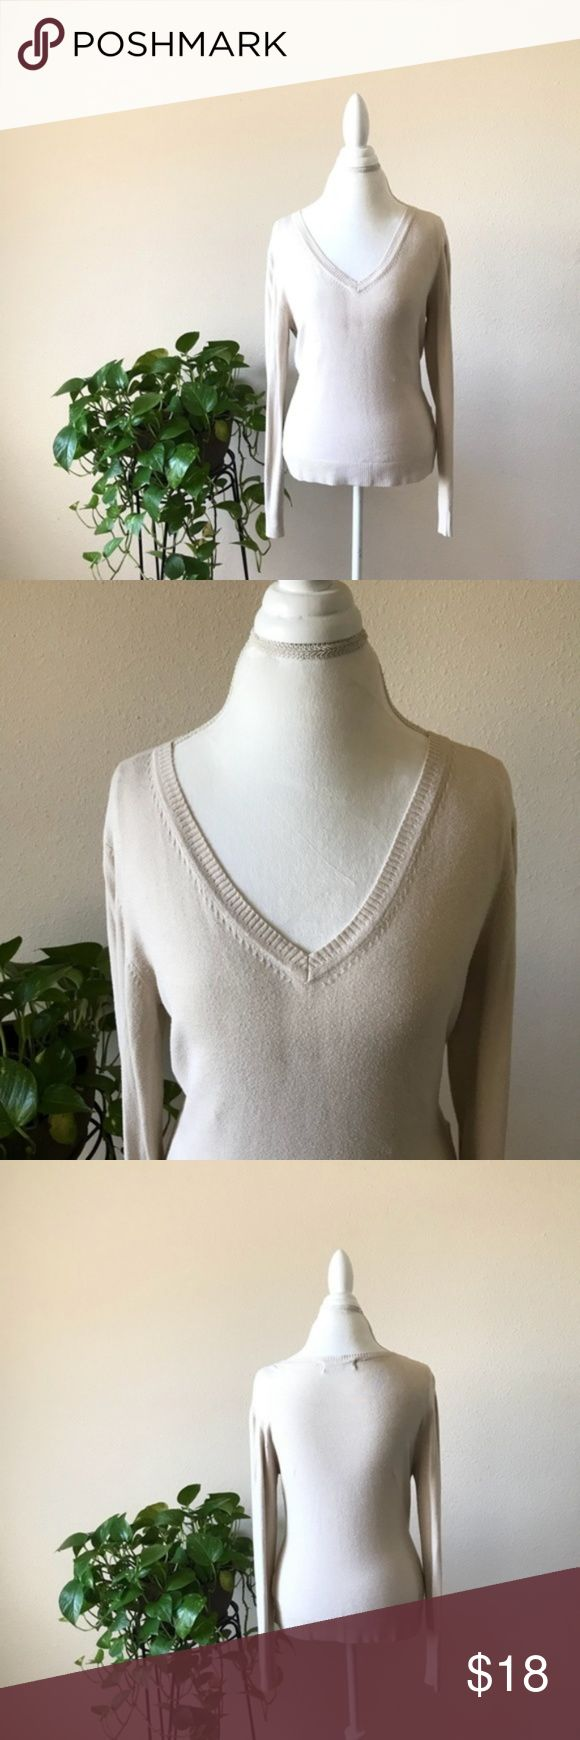 """Zara Womens Sweater V Neck Knit Beige Size L jessy_maccarey jessy_maccarey Updated 2 hours ago Zara Womens Sweater V Neck Knit Beige Size L Zara $18 $0 SIZE L Zara Women's Sweater V Neck Knit Beige Size L in very good condition  80% Rayon 18% Nylon 2% Spandex  Approximately measurements before stretching  • Shoulder to shoulder : 17.5"""" • Pit to pit : 36"""" • Waist : 32"""" • Hem : 34"""" • Length : 22.5"""" • Sleeves : 25"""" Zara Sweaters V-Necks"""